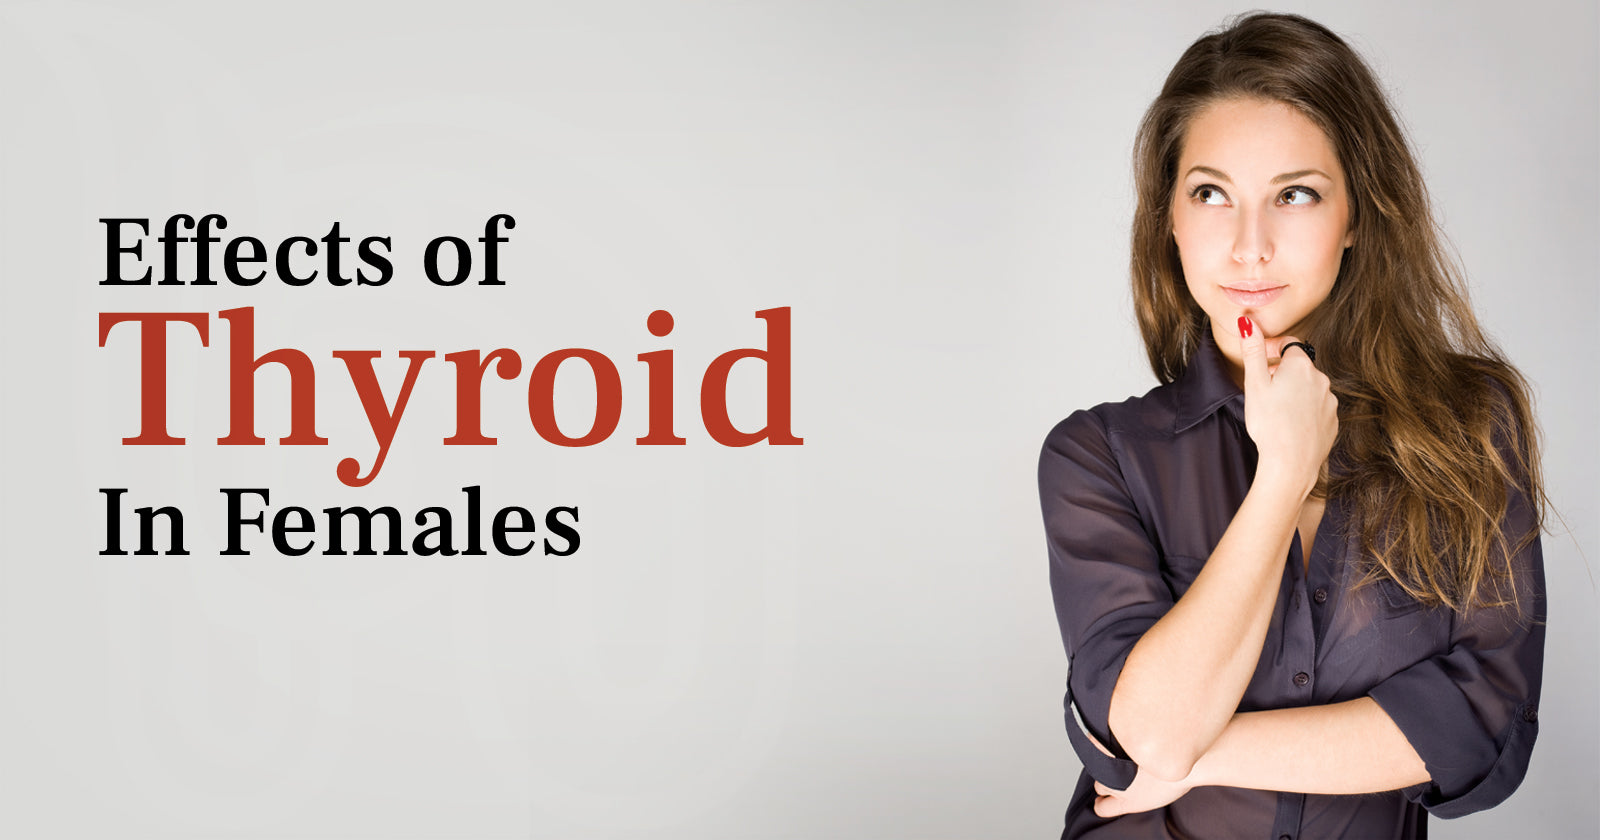 Effects Of Thyroid In Females